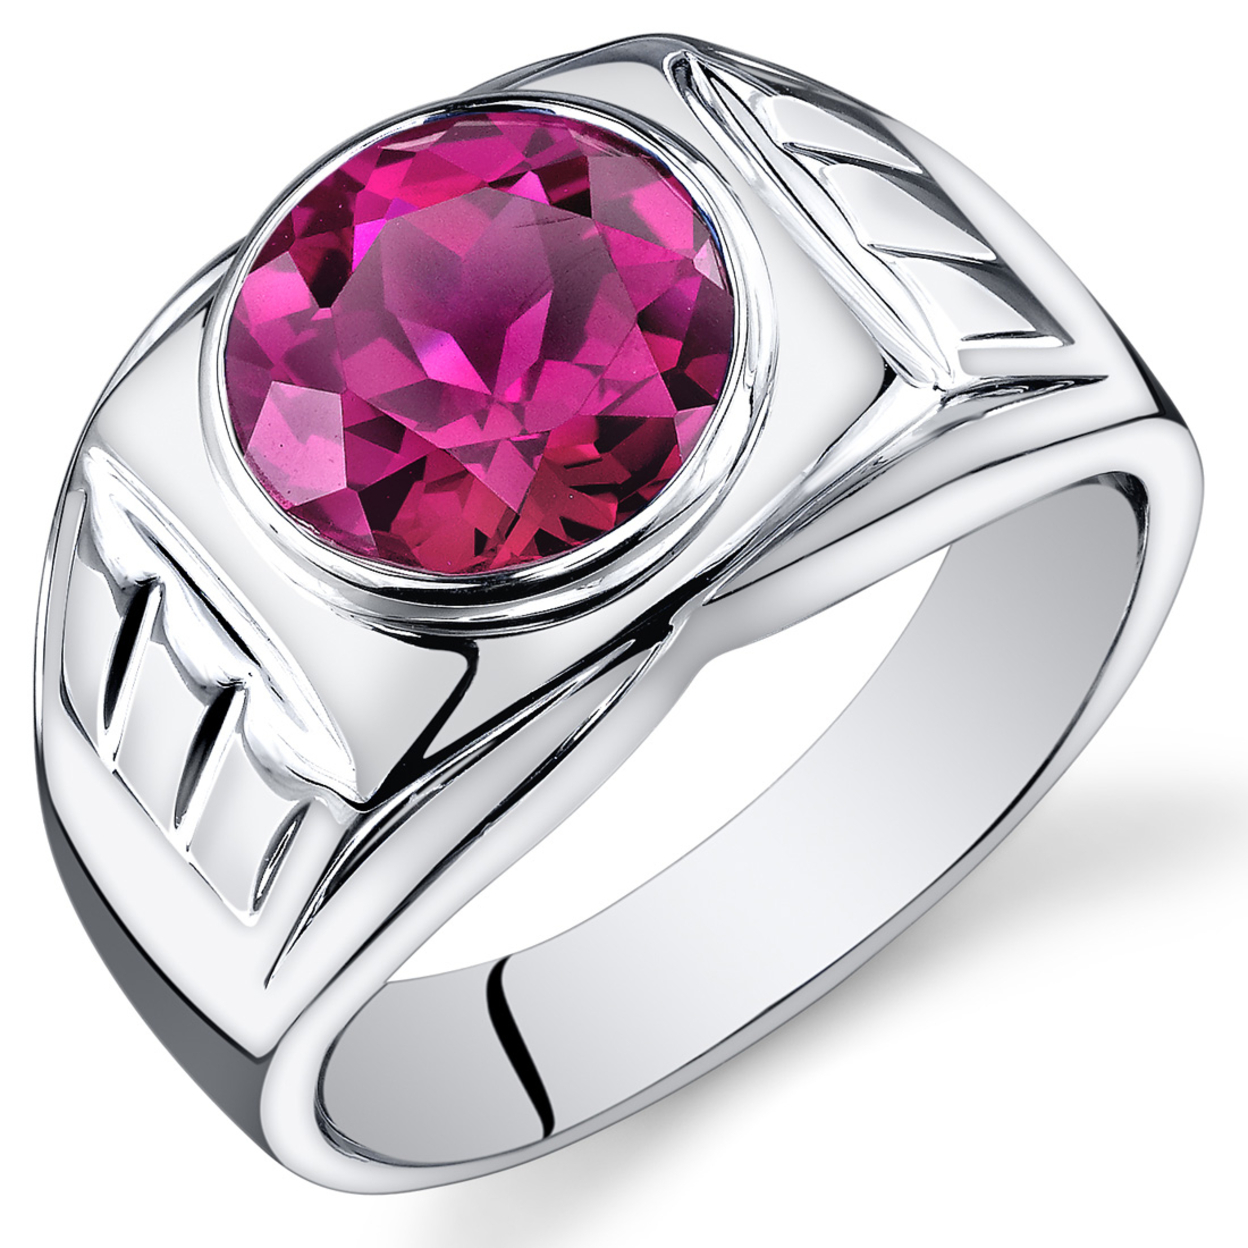 Oravo Mens 5.50 Ct Round Cut Created Ruby Ring In Rhodium-plated Sterling Silver, Sizes 8-13